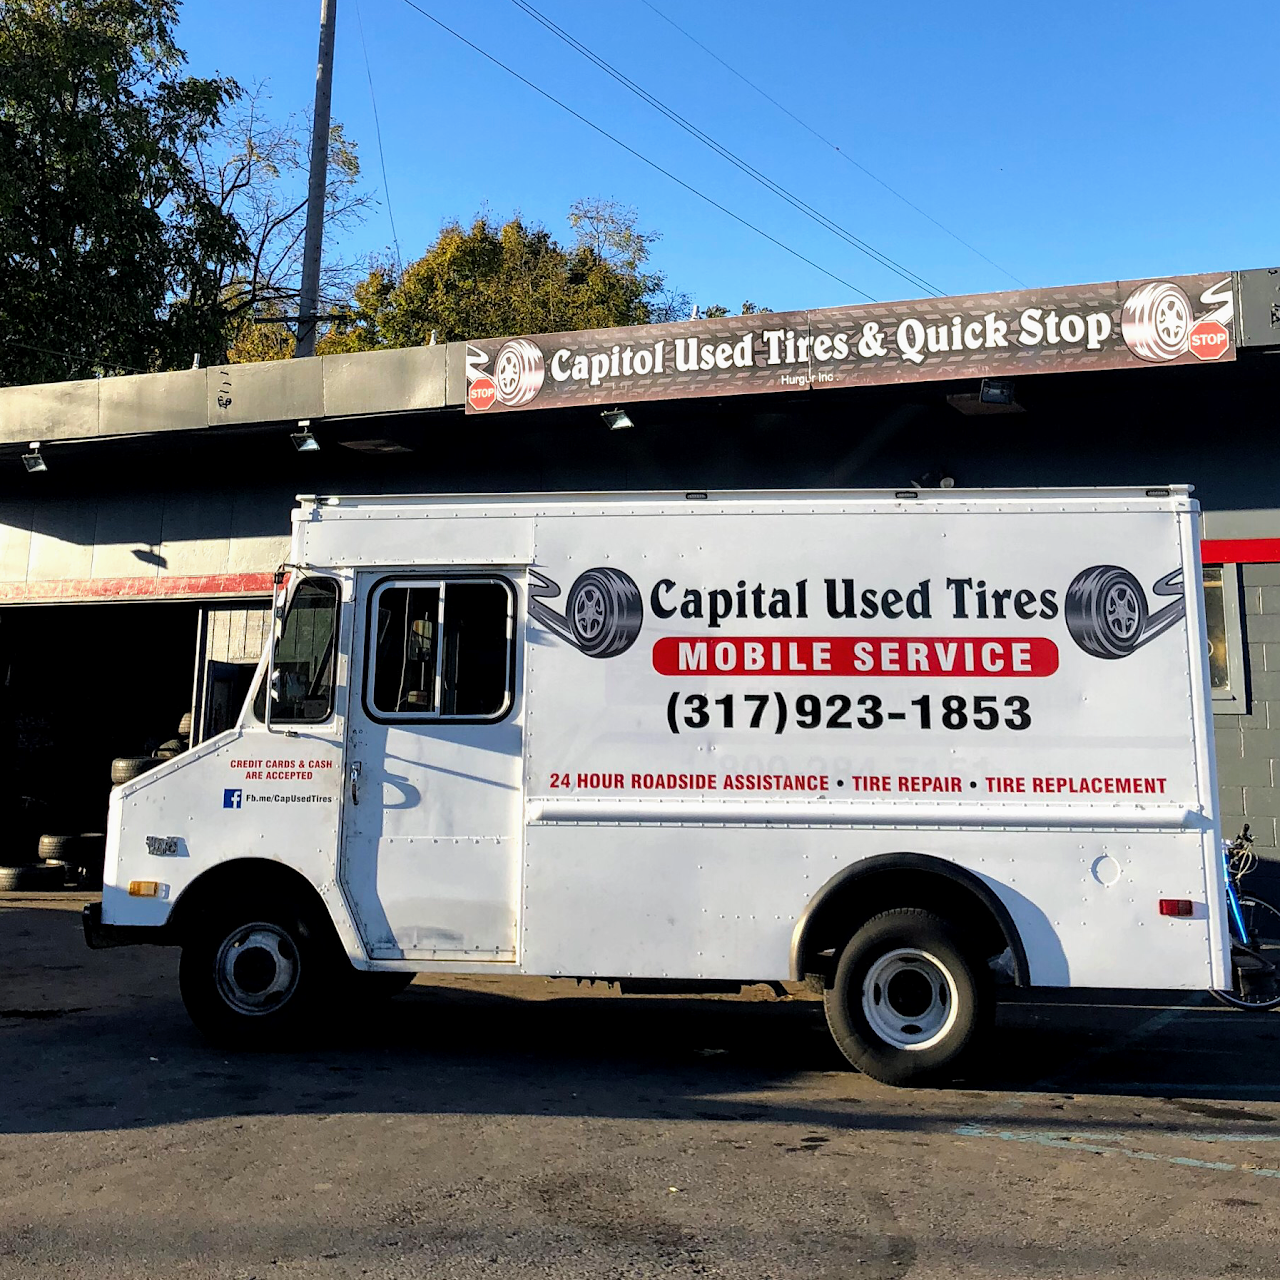 Capital Used Tires And Quick Stop We Are A Used Tire Shop That